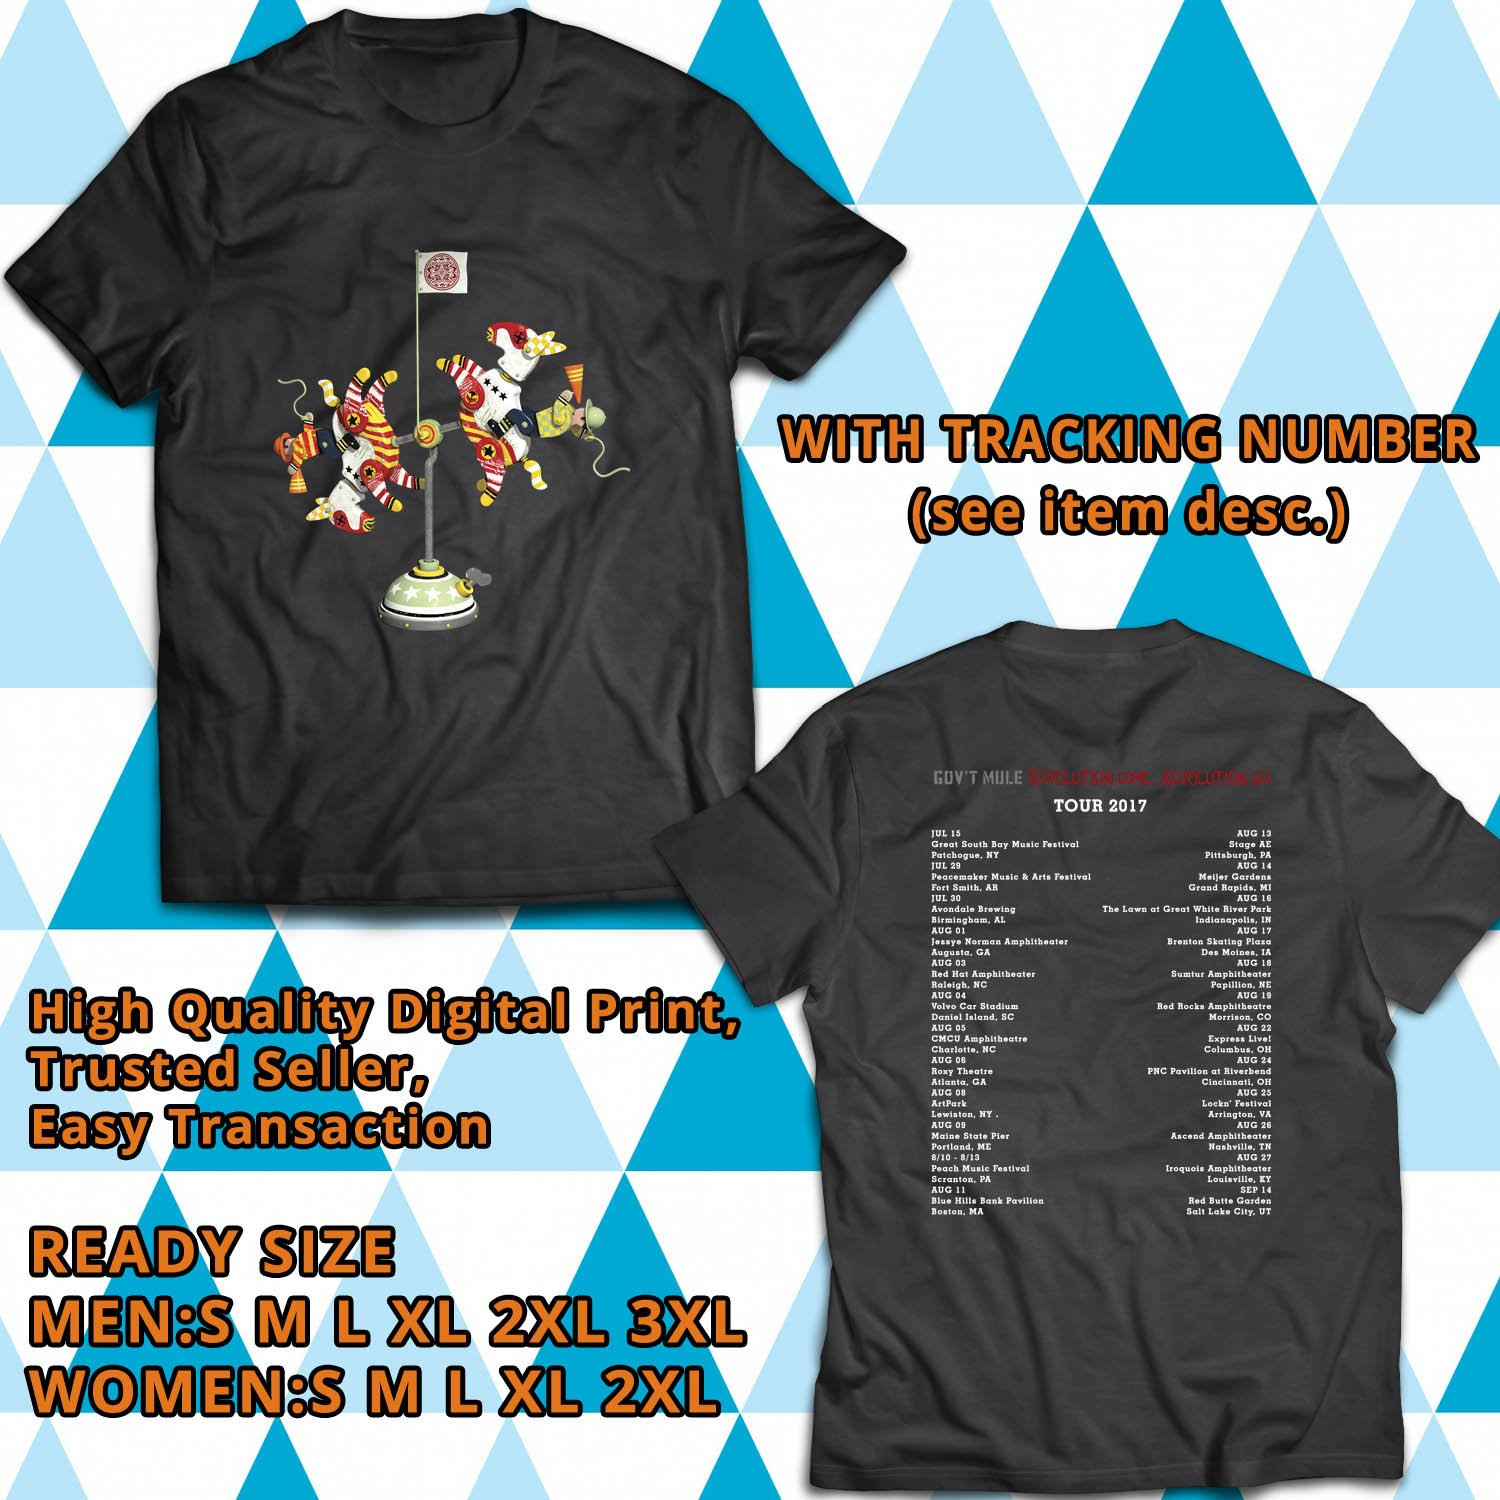 HITS GOVT MULE REVOLUTION COME REVOLUTION GO TOUR 2017 BLACK TEE'S 2SIDE MAN WOMEN ASTR 542